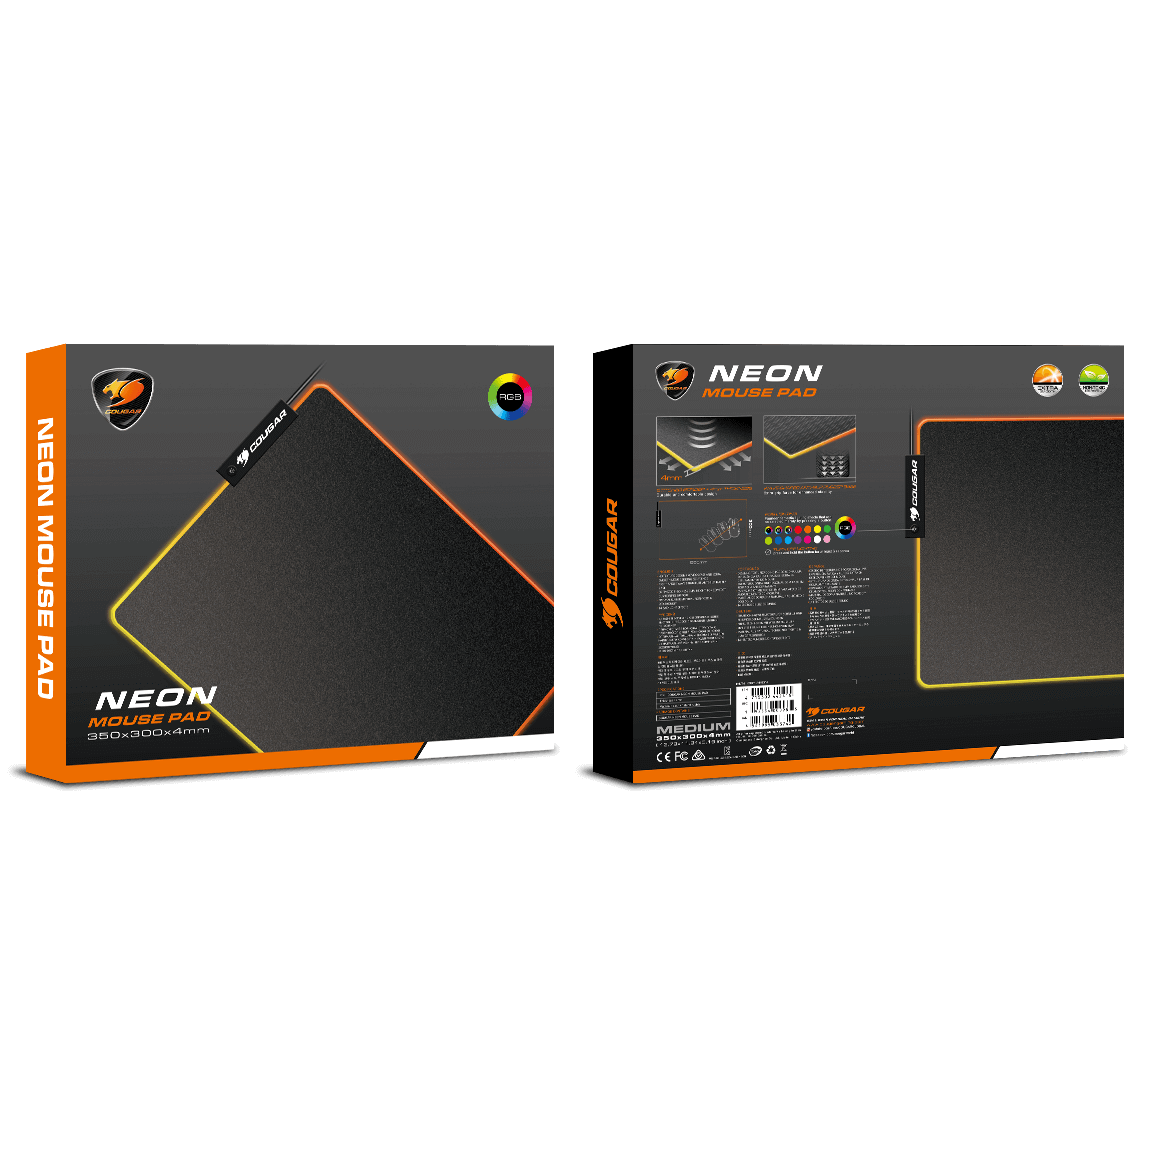 Cougar Neon RGB Gaming mouse pad 350 x 300 x 4 mm